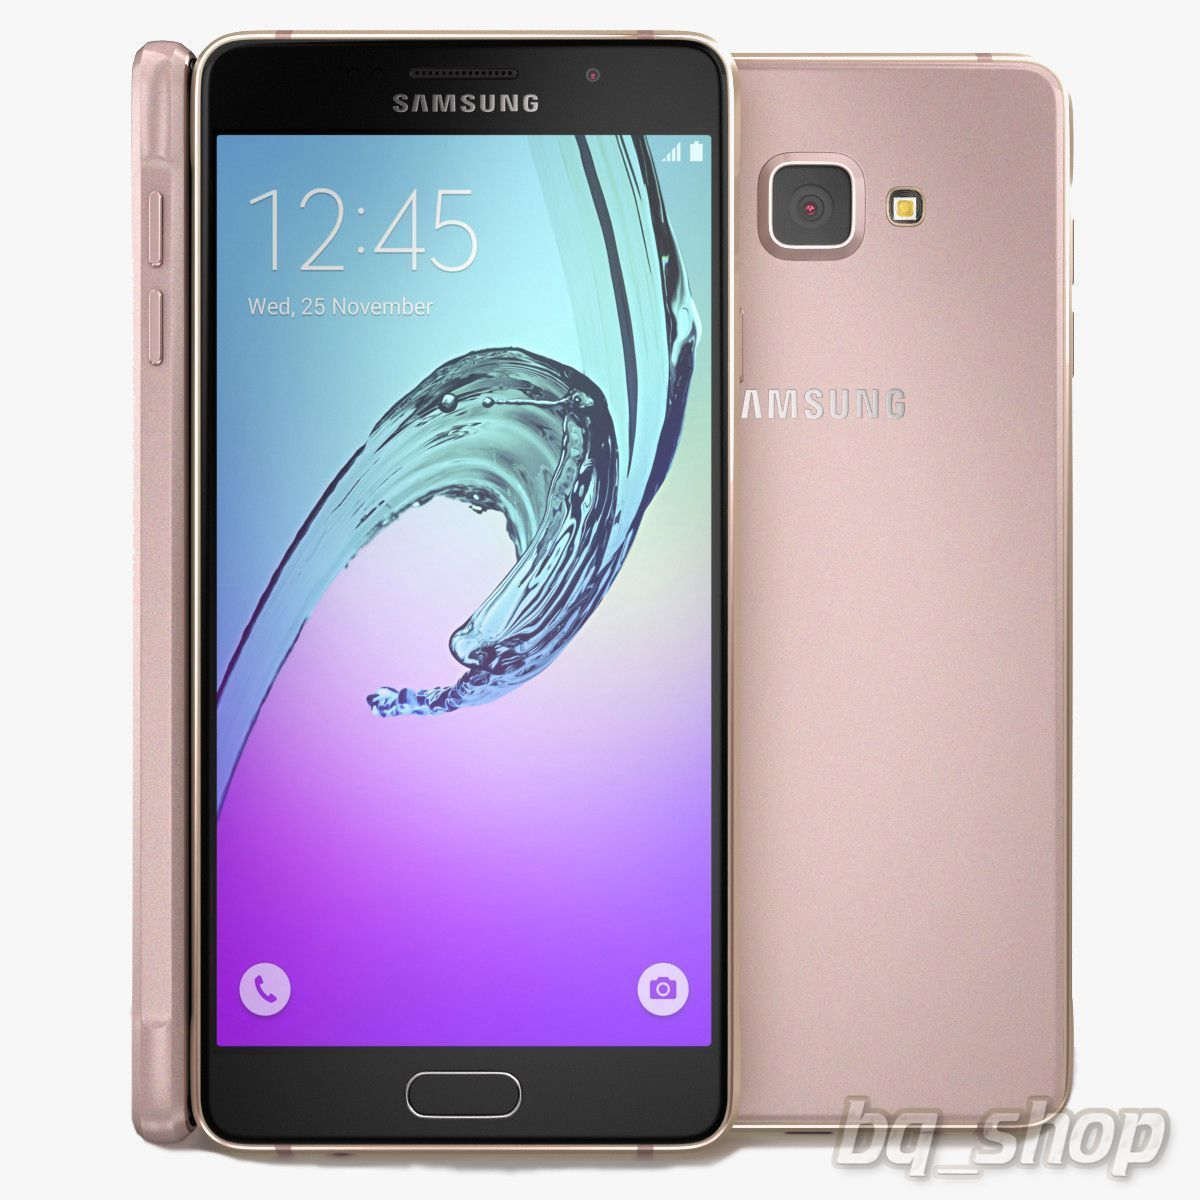 "Samsung Galaxy J7 (2016) J7108 Pink Octa-core 5.5"" S.AMOLED 13MP"